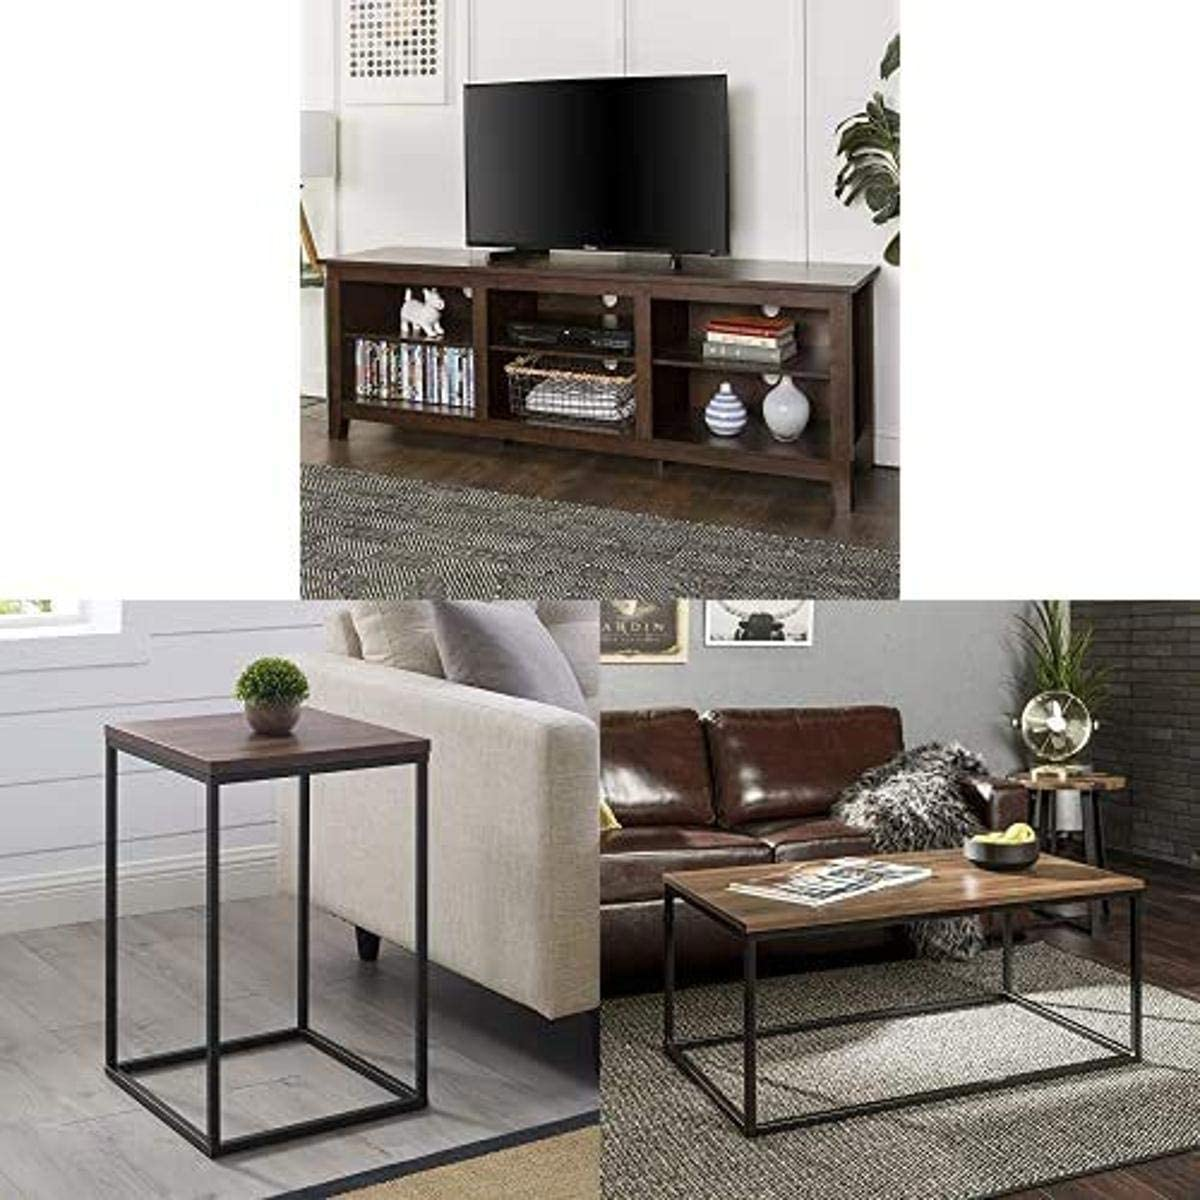 Walker Edison Furniture Company Minimal Farmhouse Wood Universal Stand for TV with Square Wood Side Accent Small End Table, 16 Inch and WE Furniture Rectangle Coffee Accent Table,42 Inch,Walnut Brown